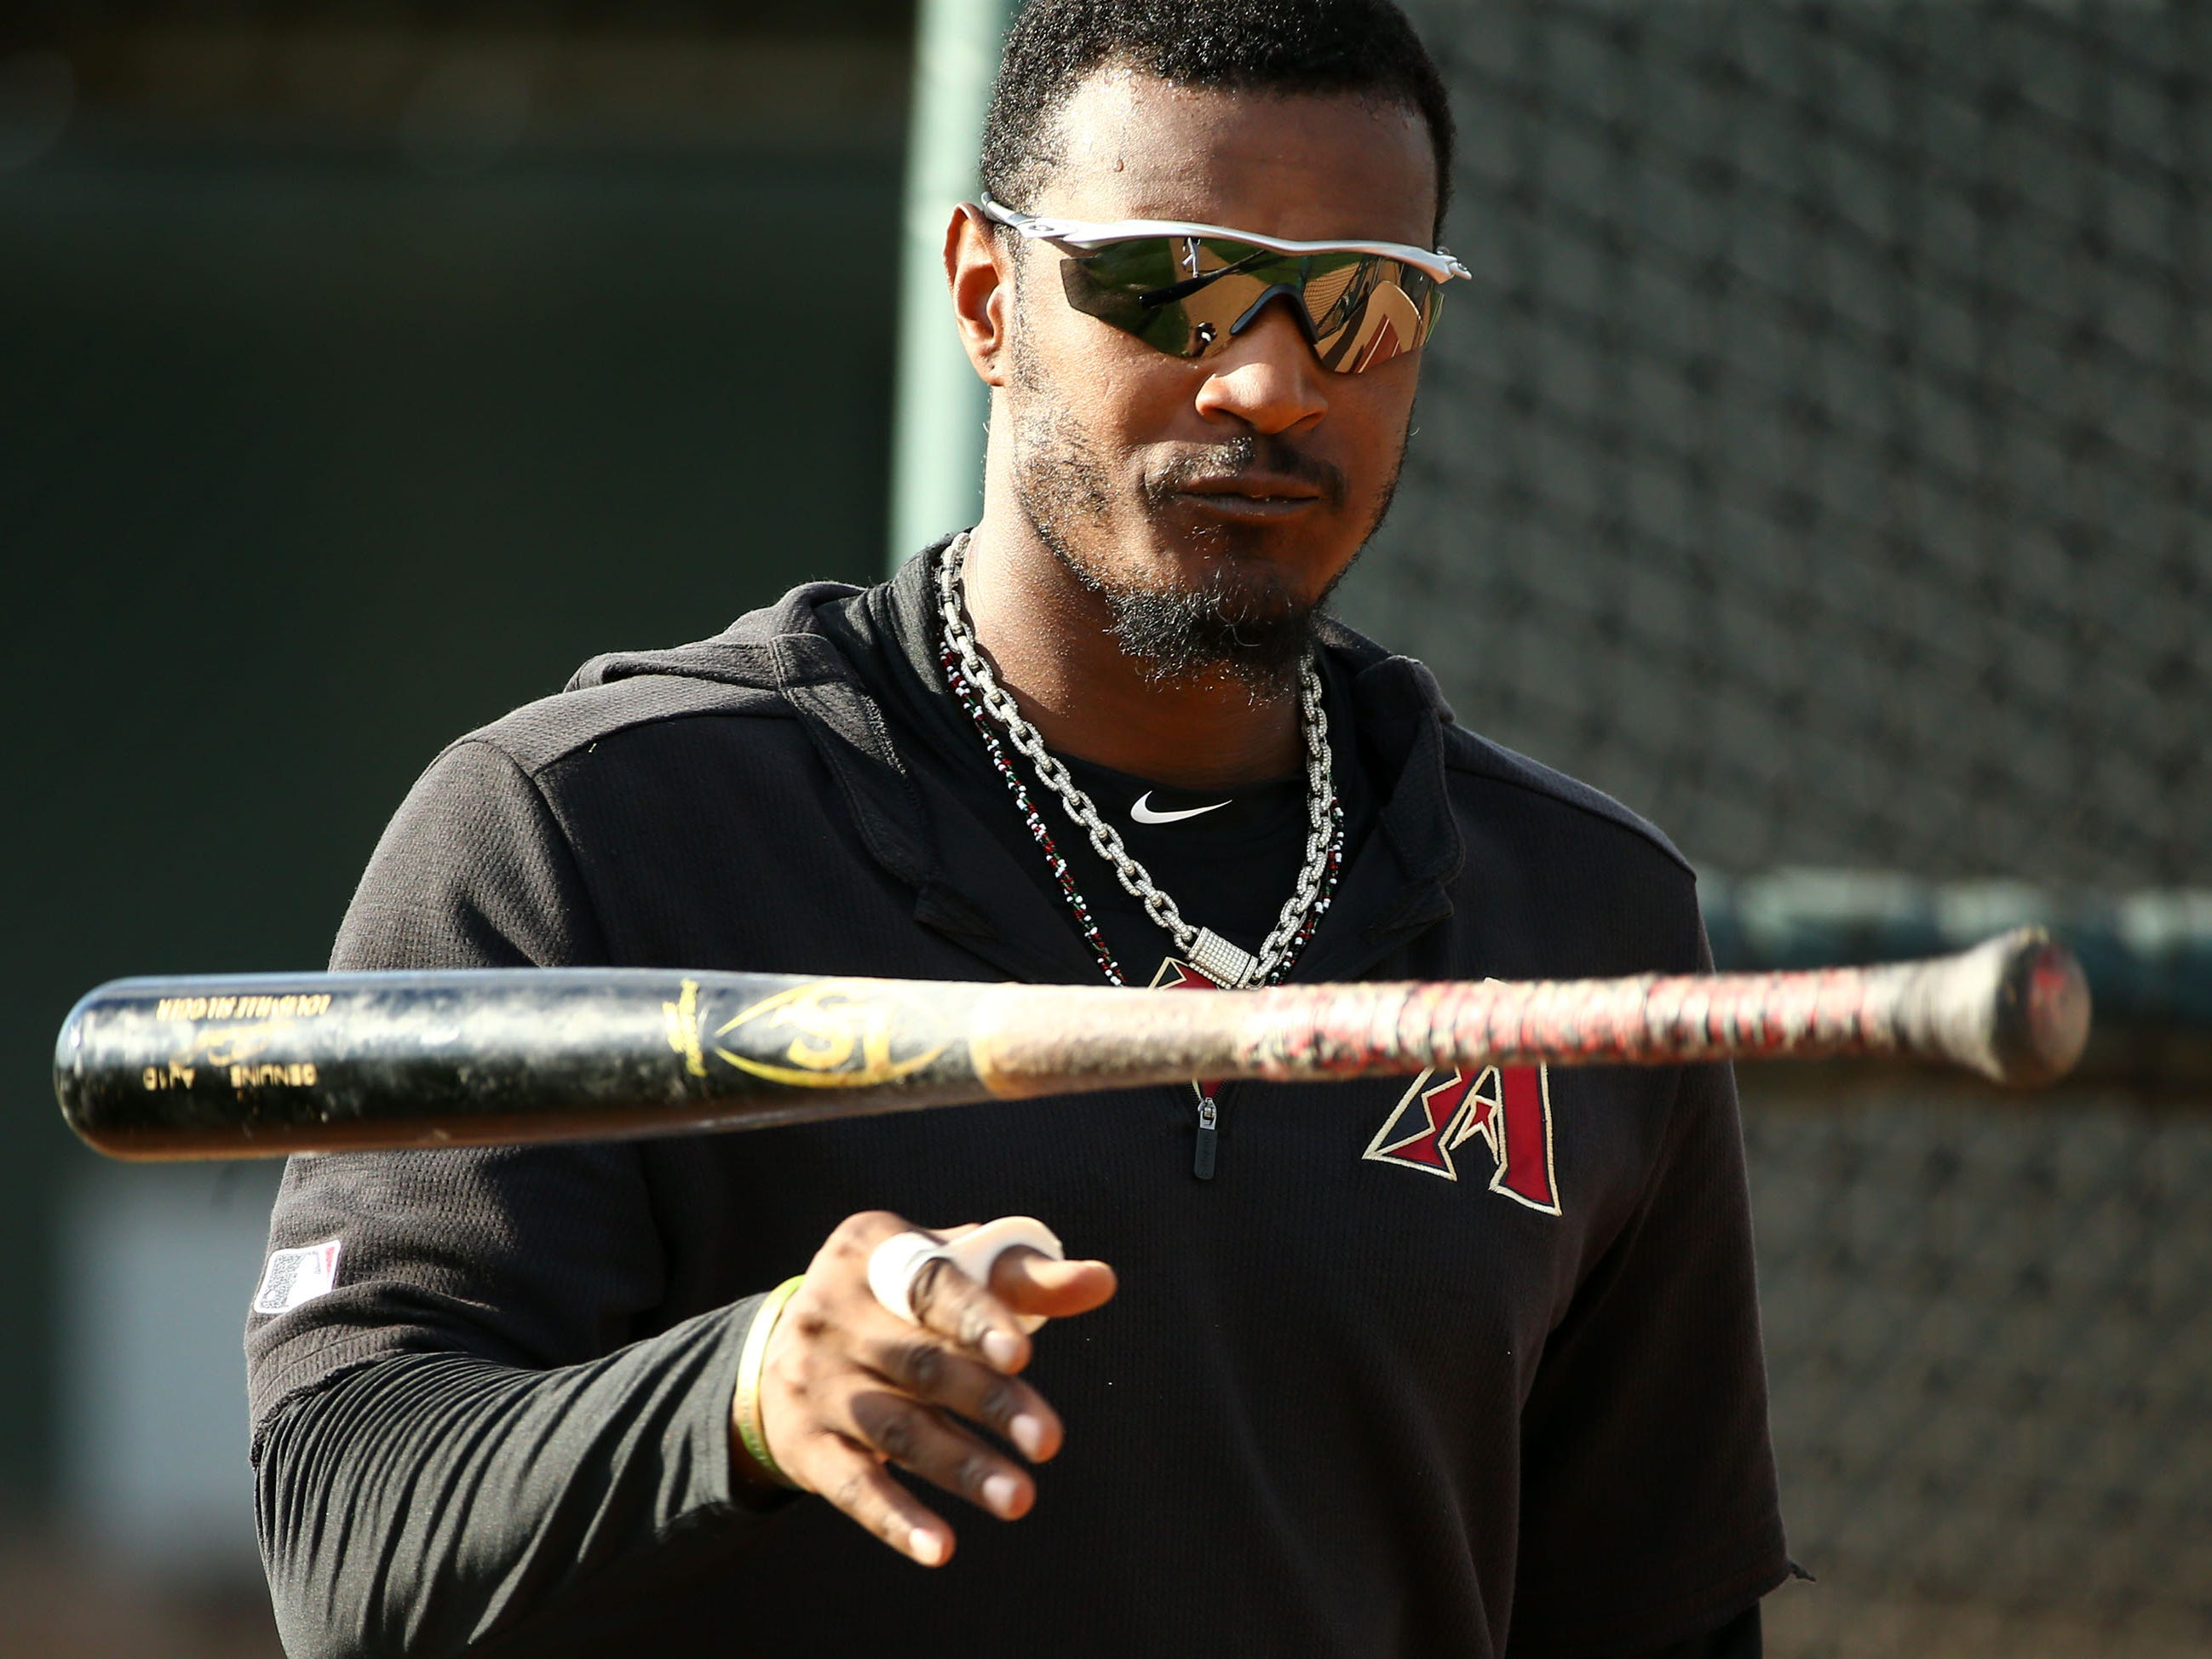 Arizona Diamondbacks outfielder Adam Jones flips his bat during spring training work-outs on Mar. 19, 2019 at Salt River Fields in Scottsdale, Ariz.